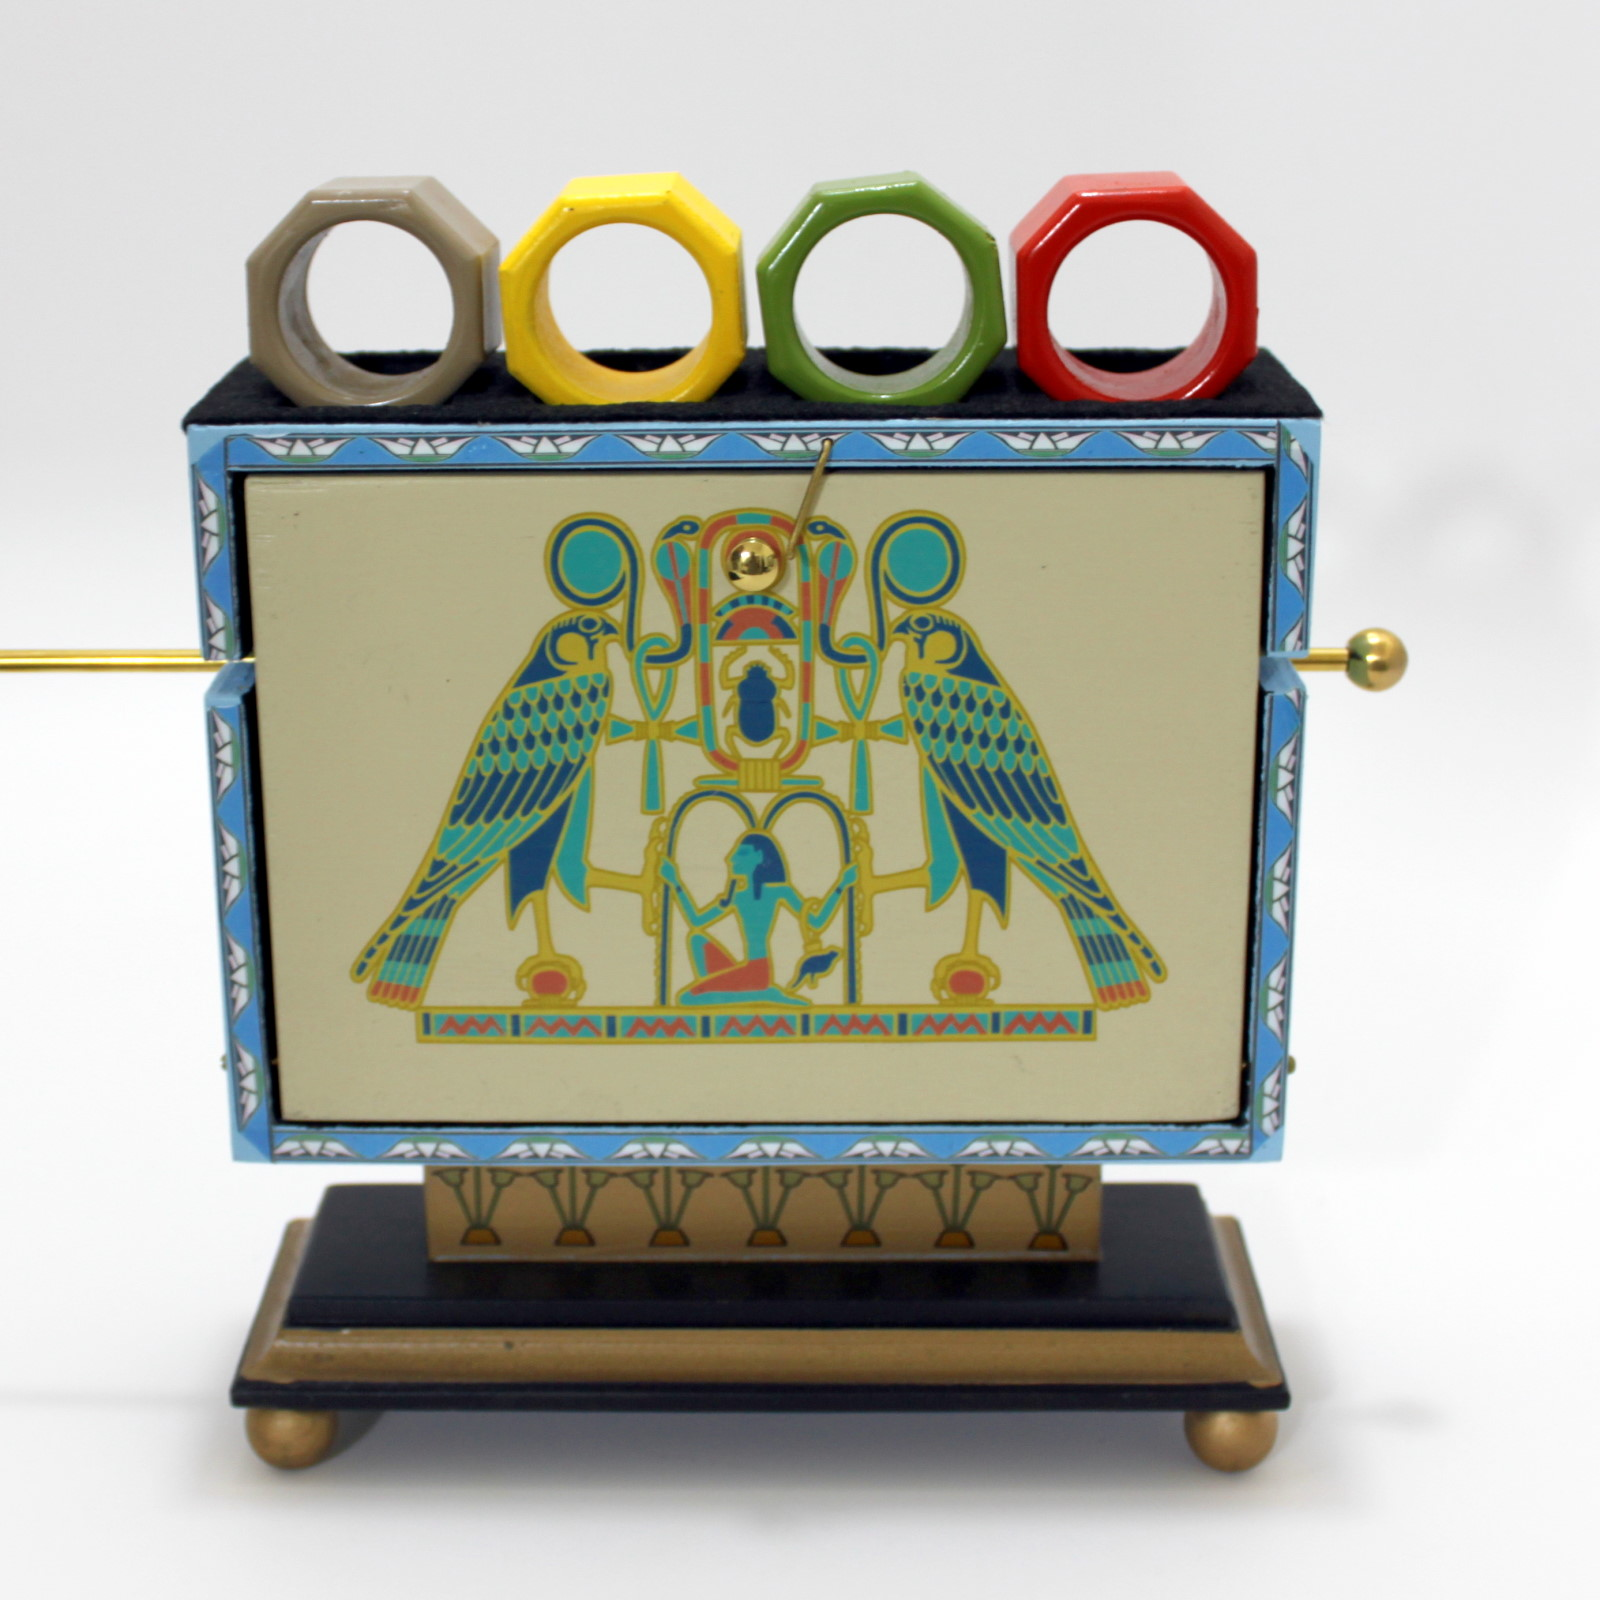 Cleopatra's Jewelry Chest by Limited Edition Magic